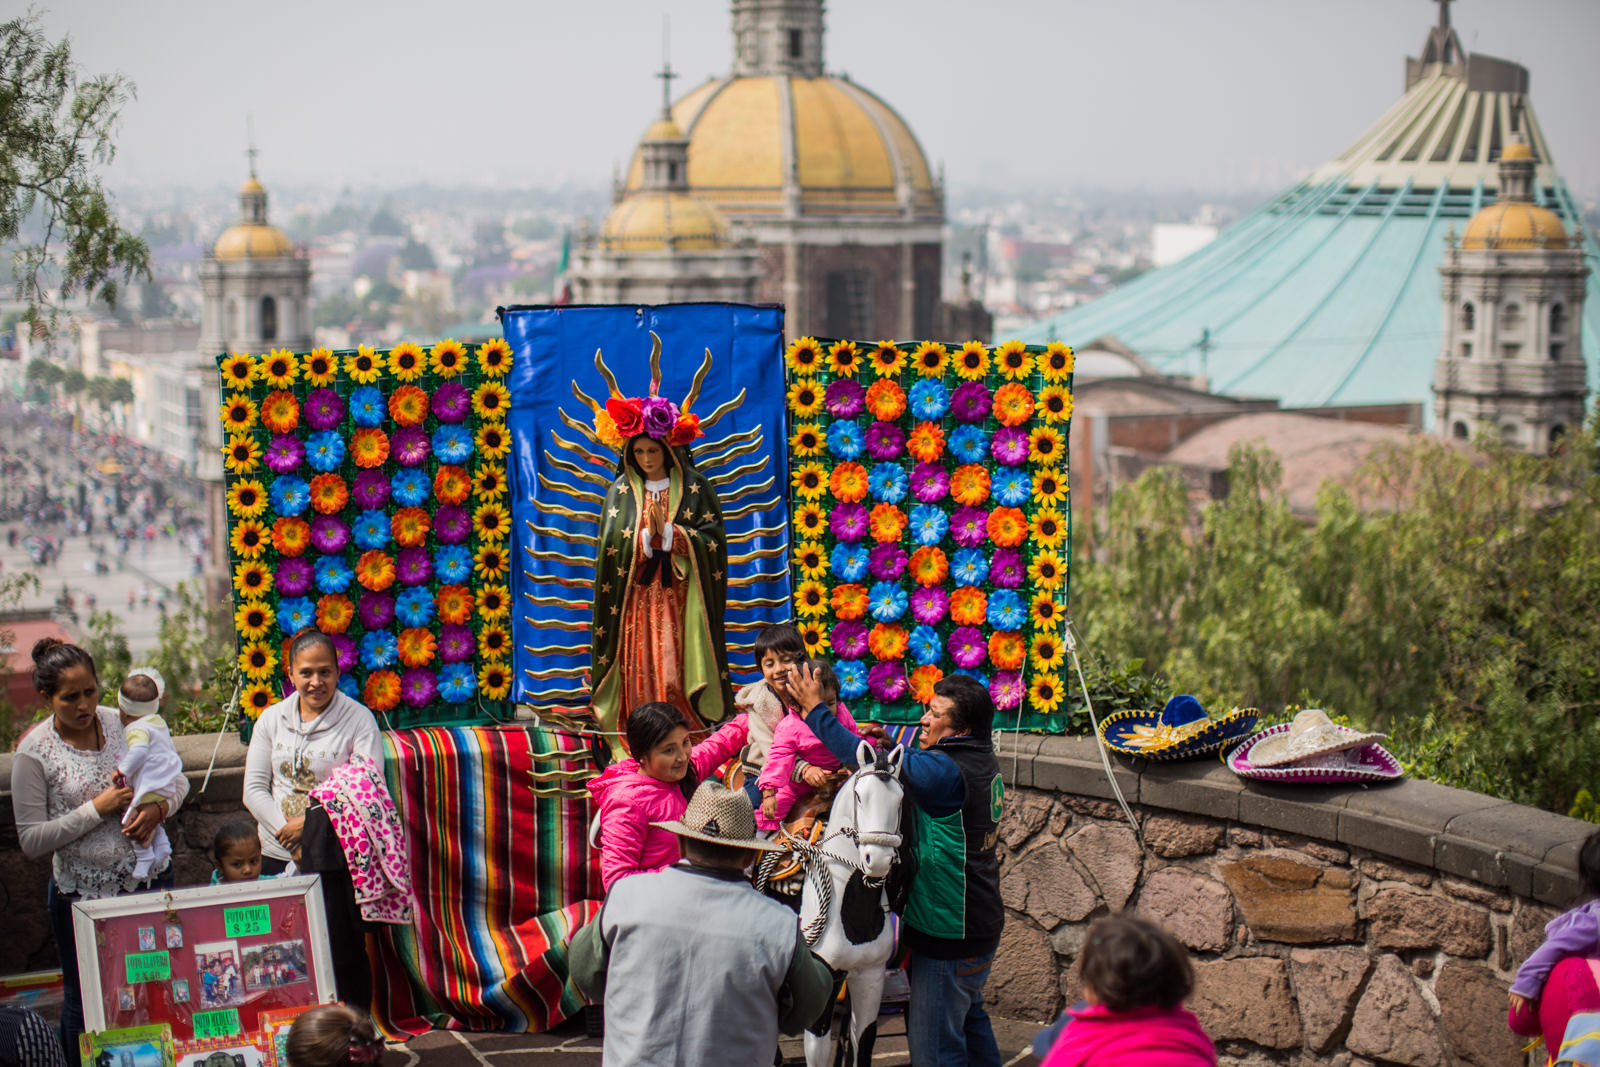 Parents placing their children for a souvenir photo on the background of the   old Basilica of Our Lady of Guadalupe   - one of the most visited Catholic Shrines in the world and the National Shrine of Mexico. That's where Our Lady of Guadalupe, or the Virgin Mary, is believed to have appeared to a Native American peasant named Juan Diego in 1531.